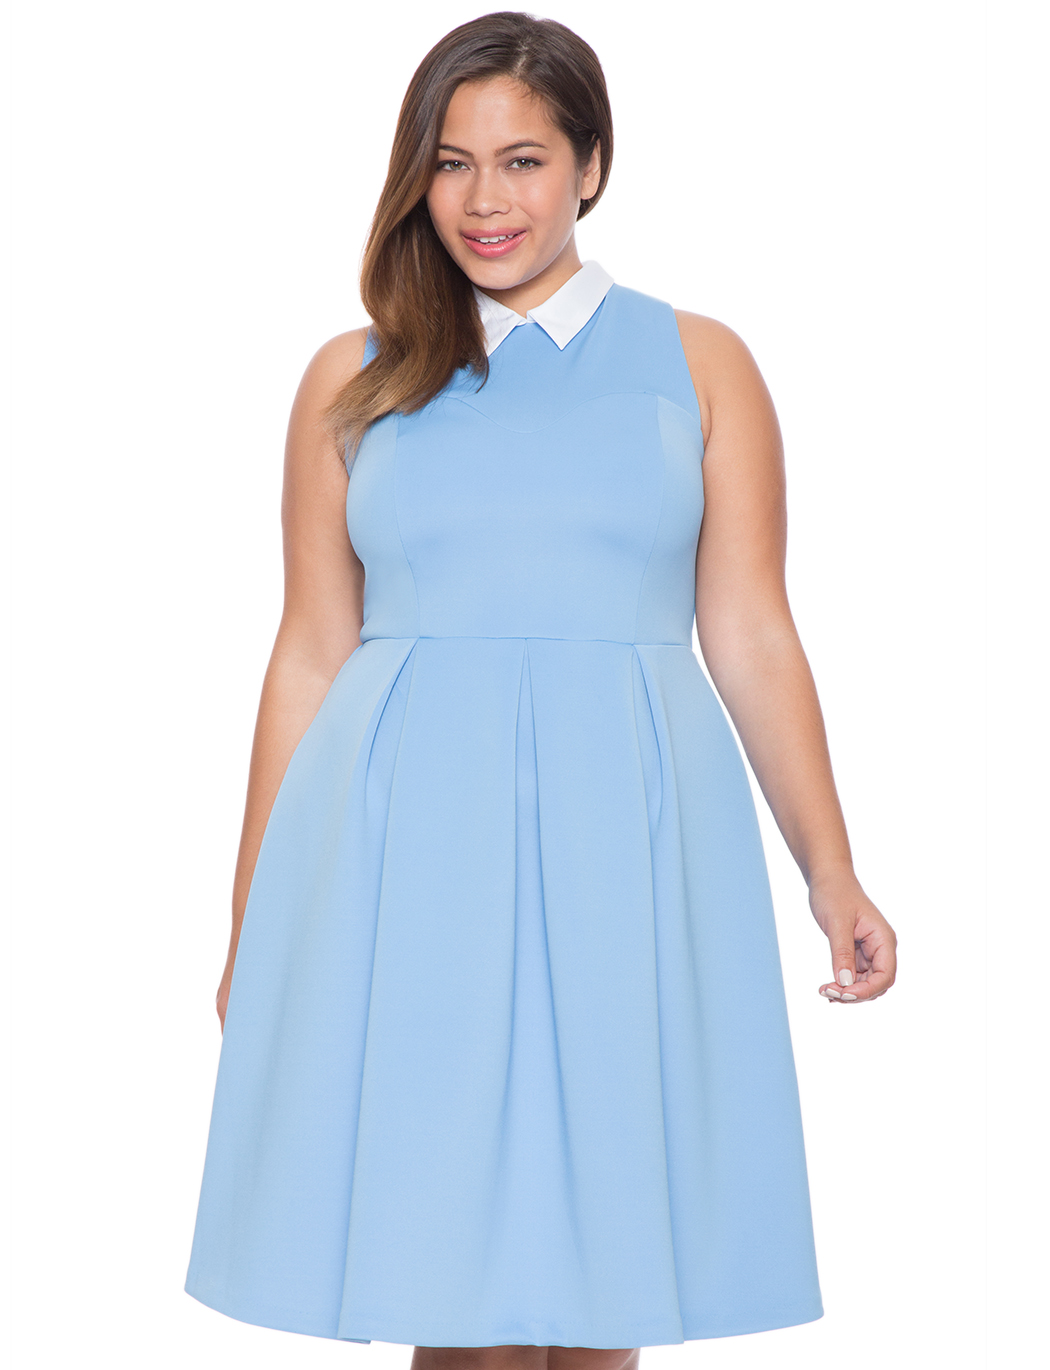 Eloqui Fit and Flare Plus Size Collar Dress